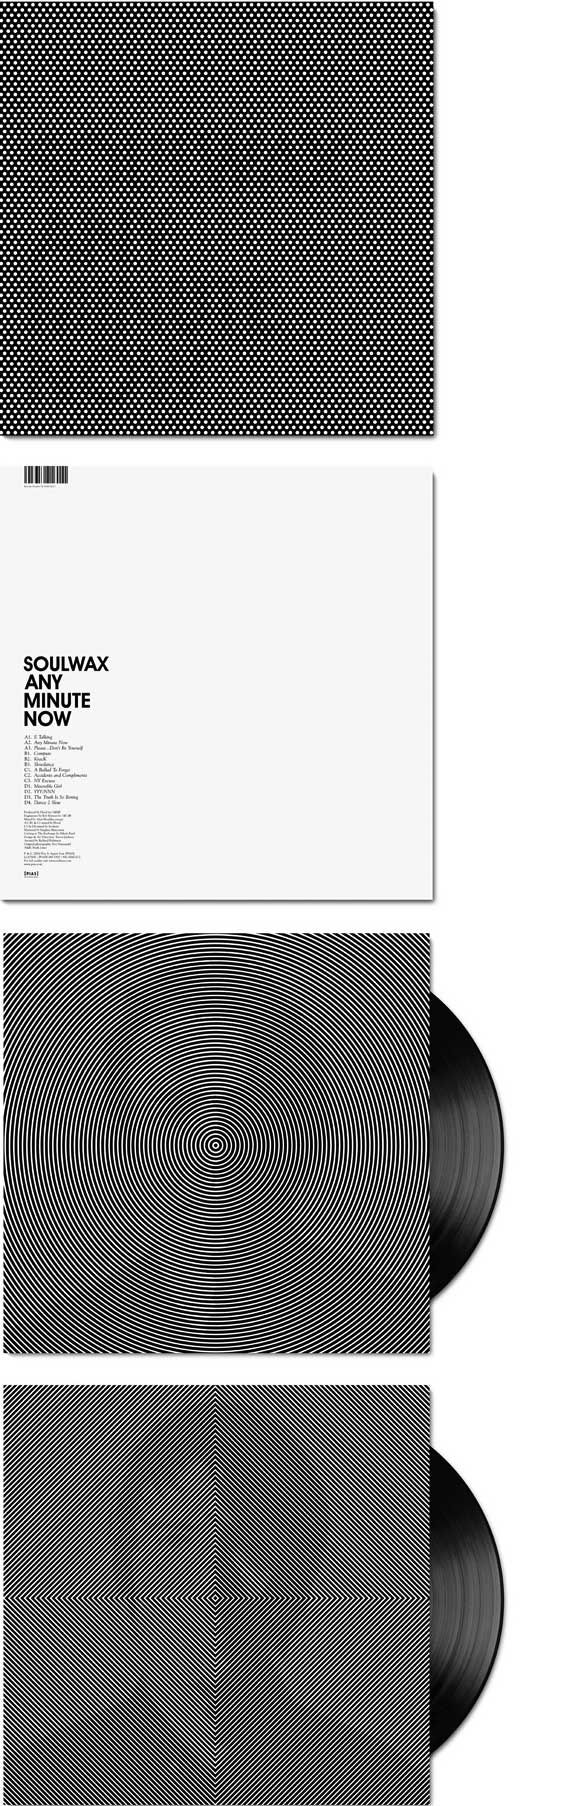 Soulwax / Any Minute Now